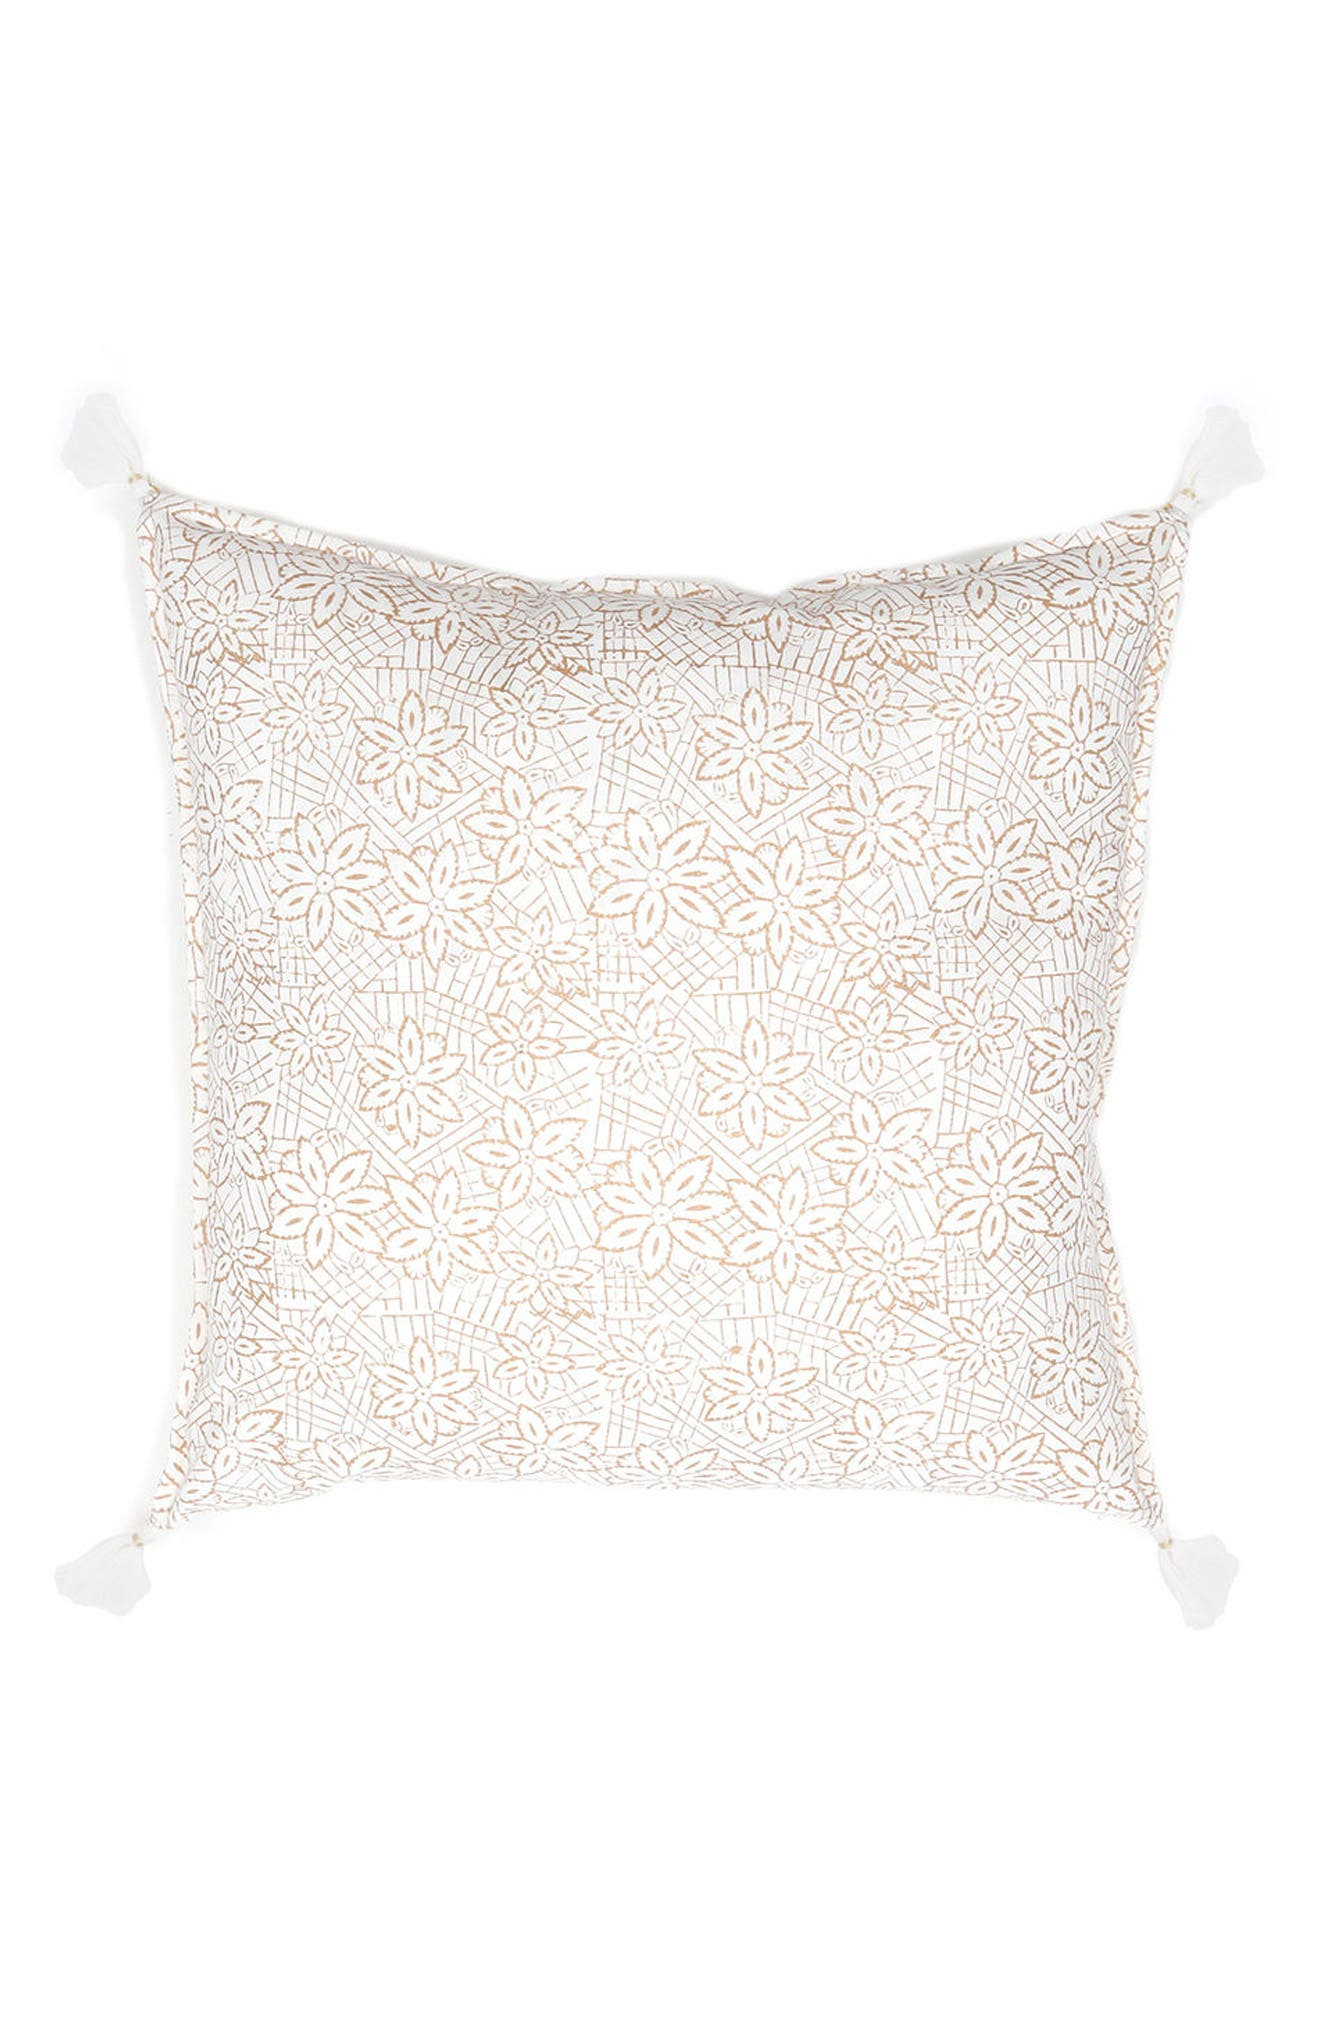 Alternate Image 1 Selected - Pom Pom at Home Keya Accent Pillow